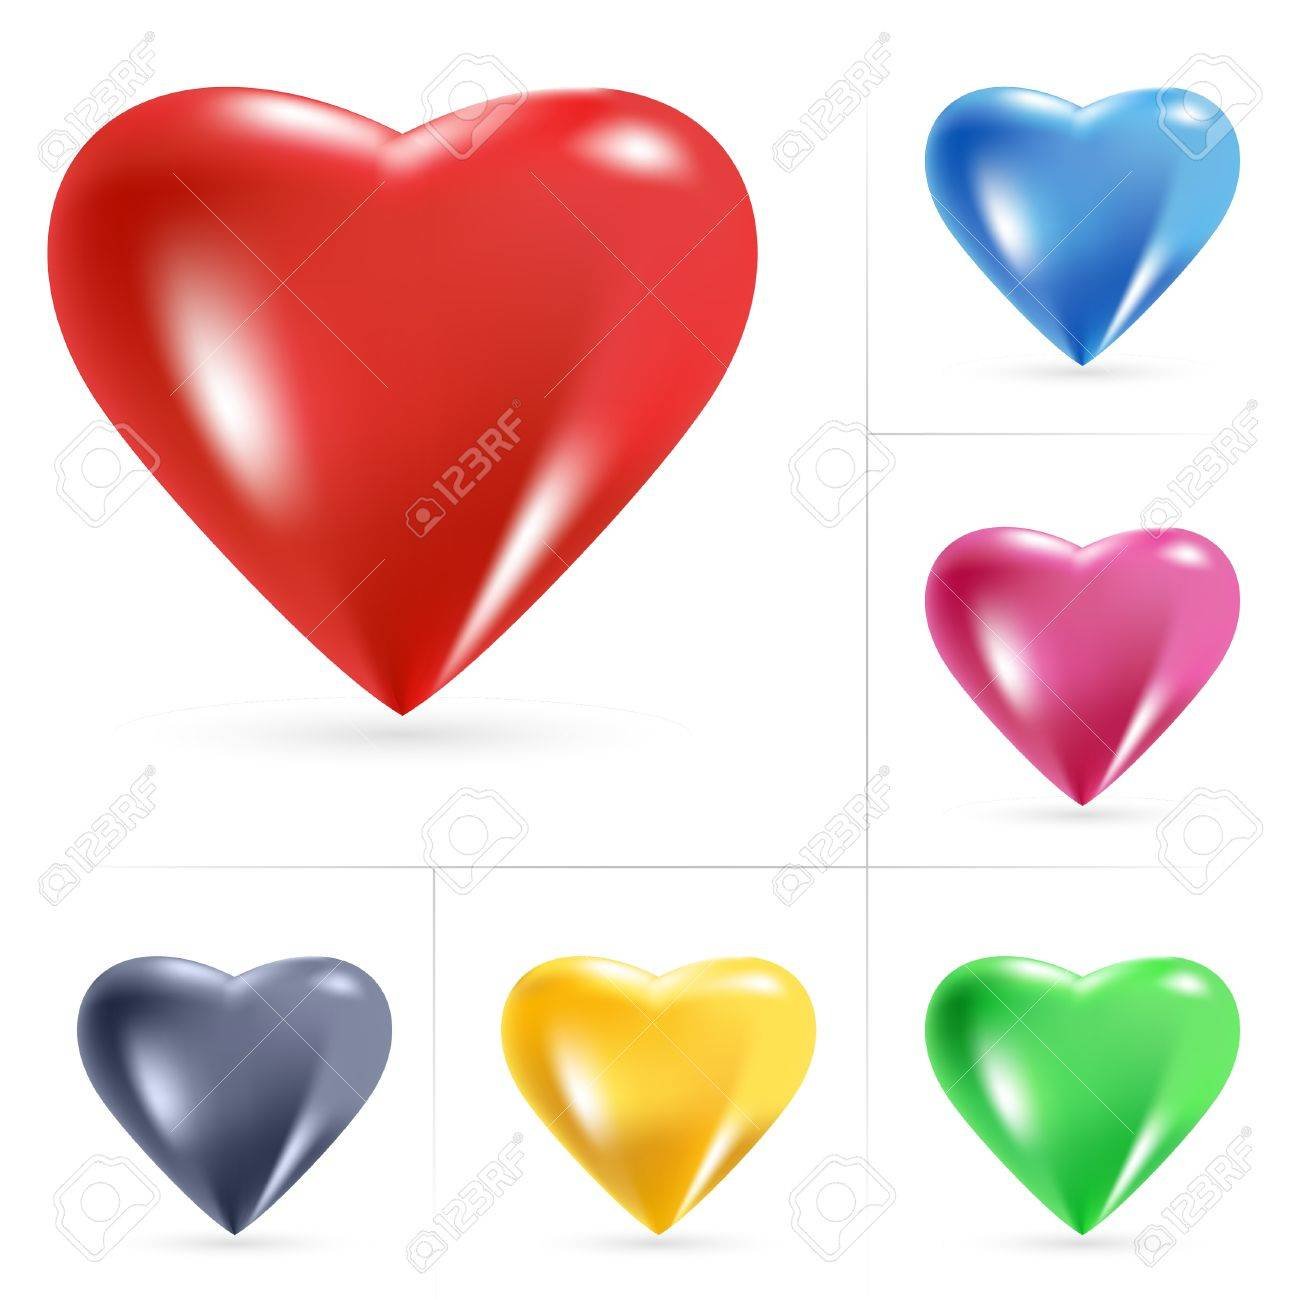 Heart Icons. Vector illustration on white background - 8925218